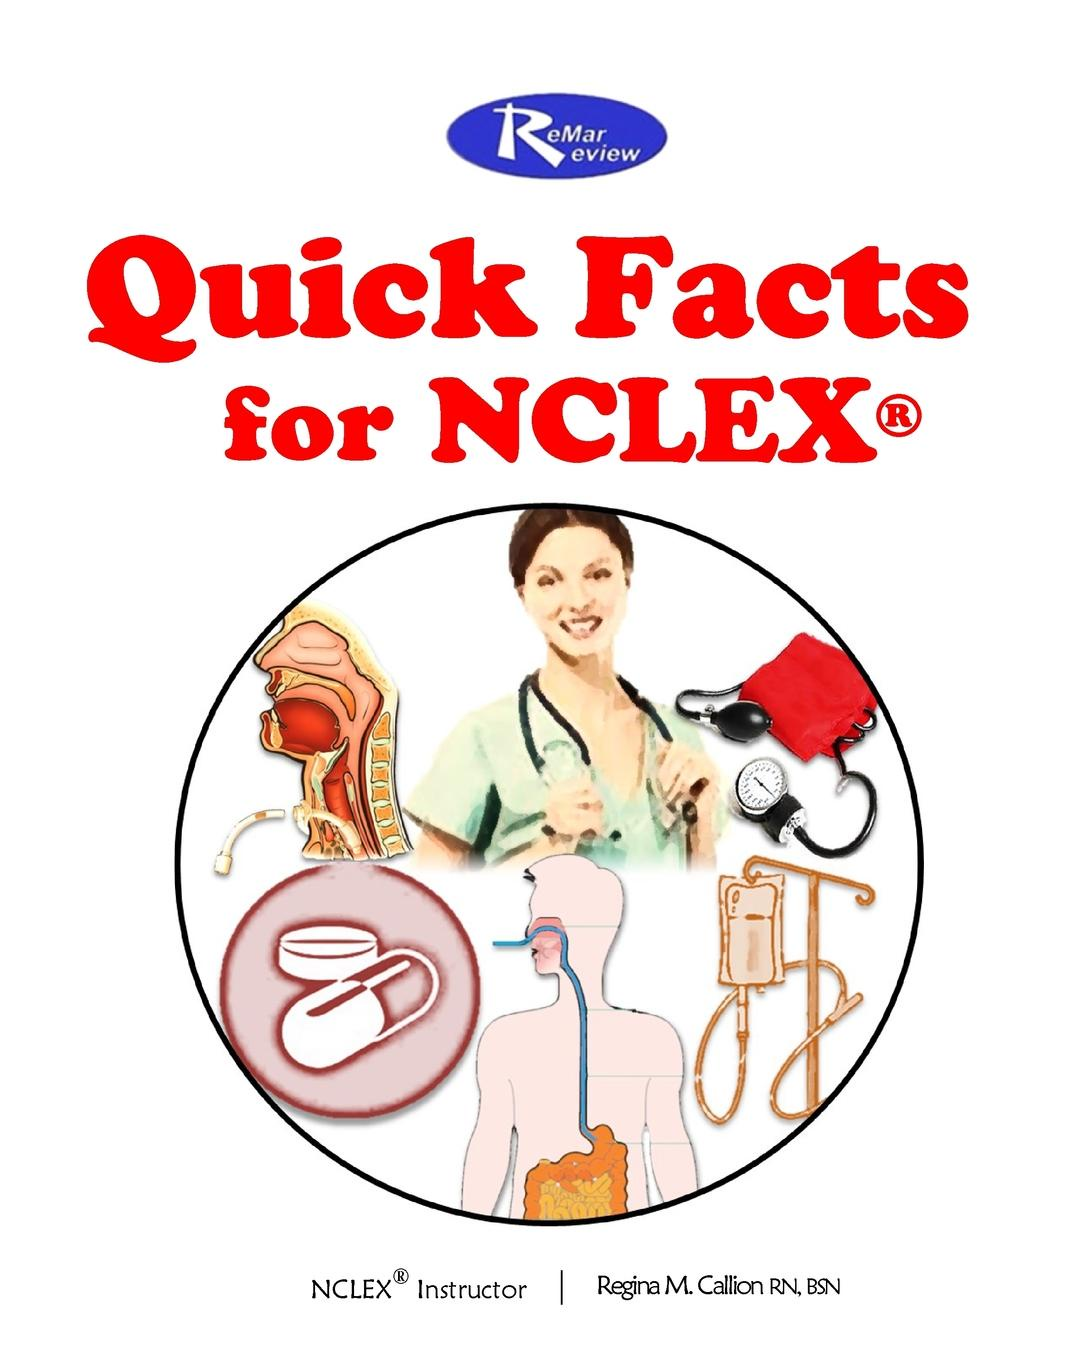 MSN RN Regina M Callion The ReMar Review Quick Facts for NCLEX цена